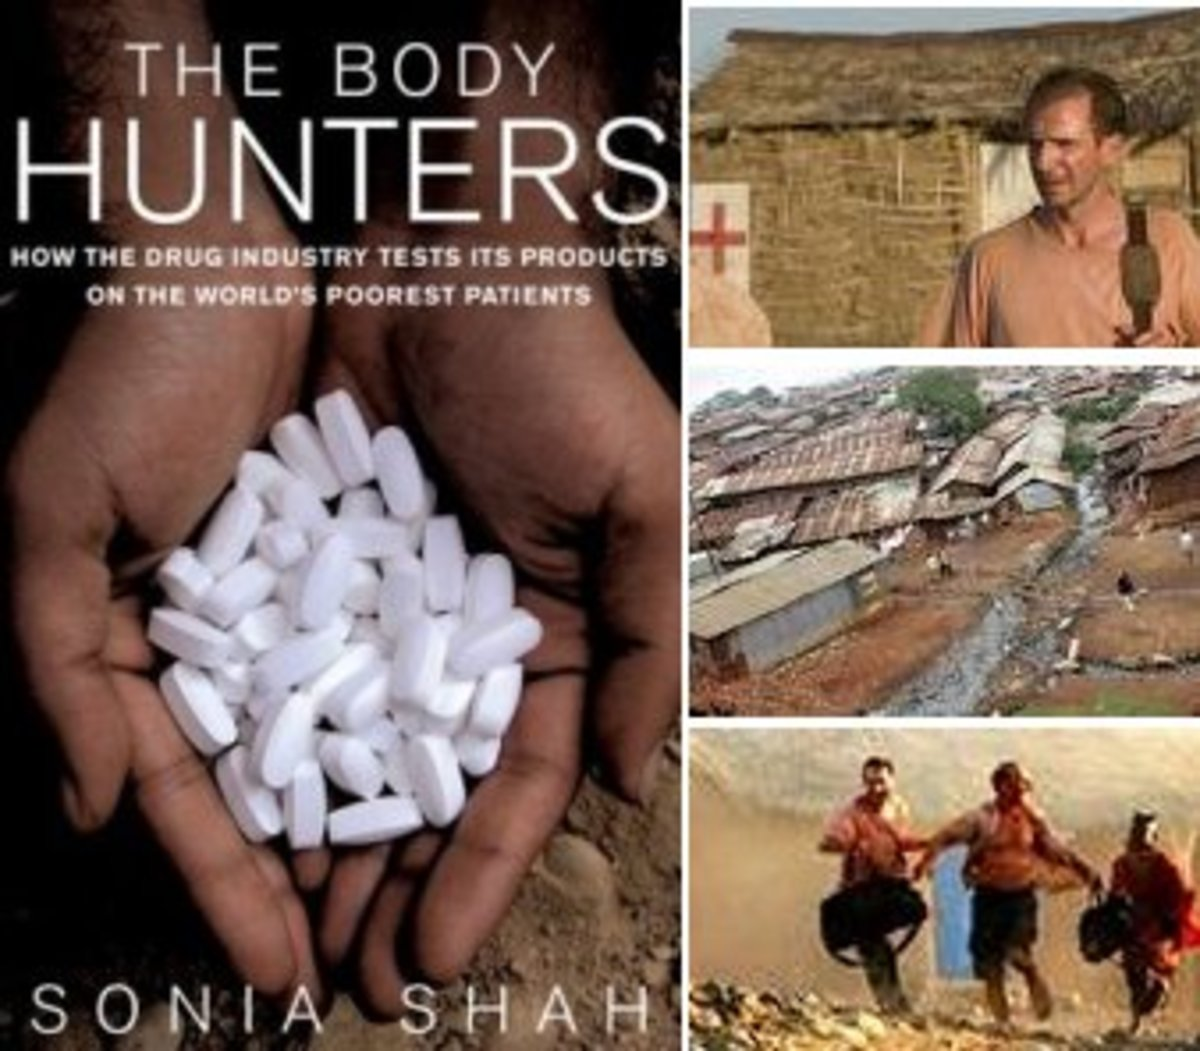 Sonia Shah's book exposes how drug companies test new drugs on the poor of developing nations